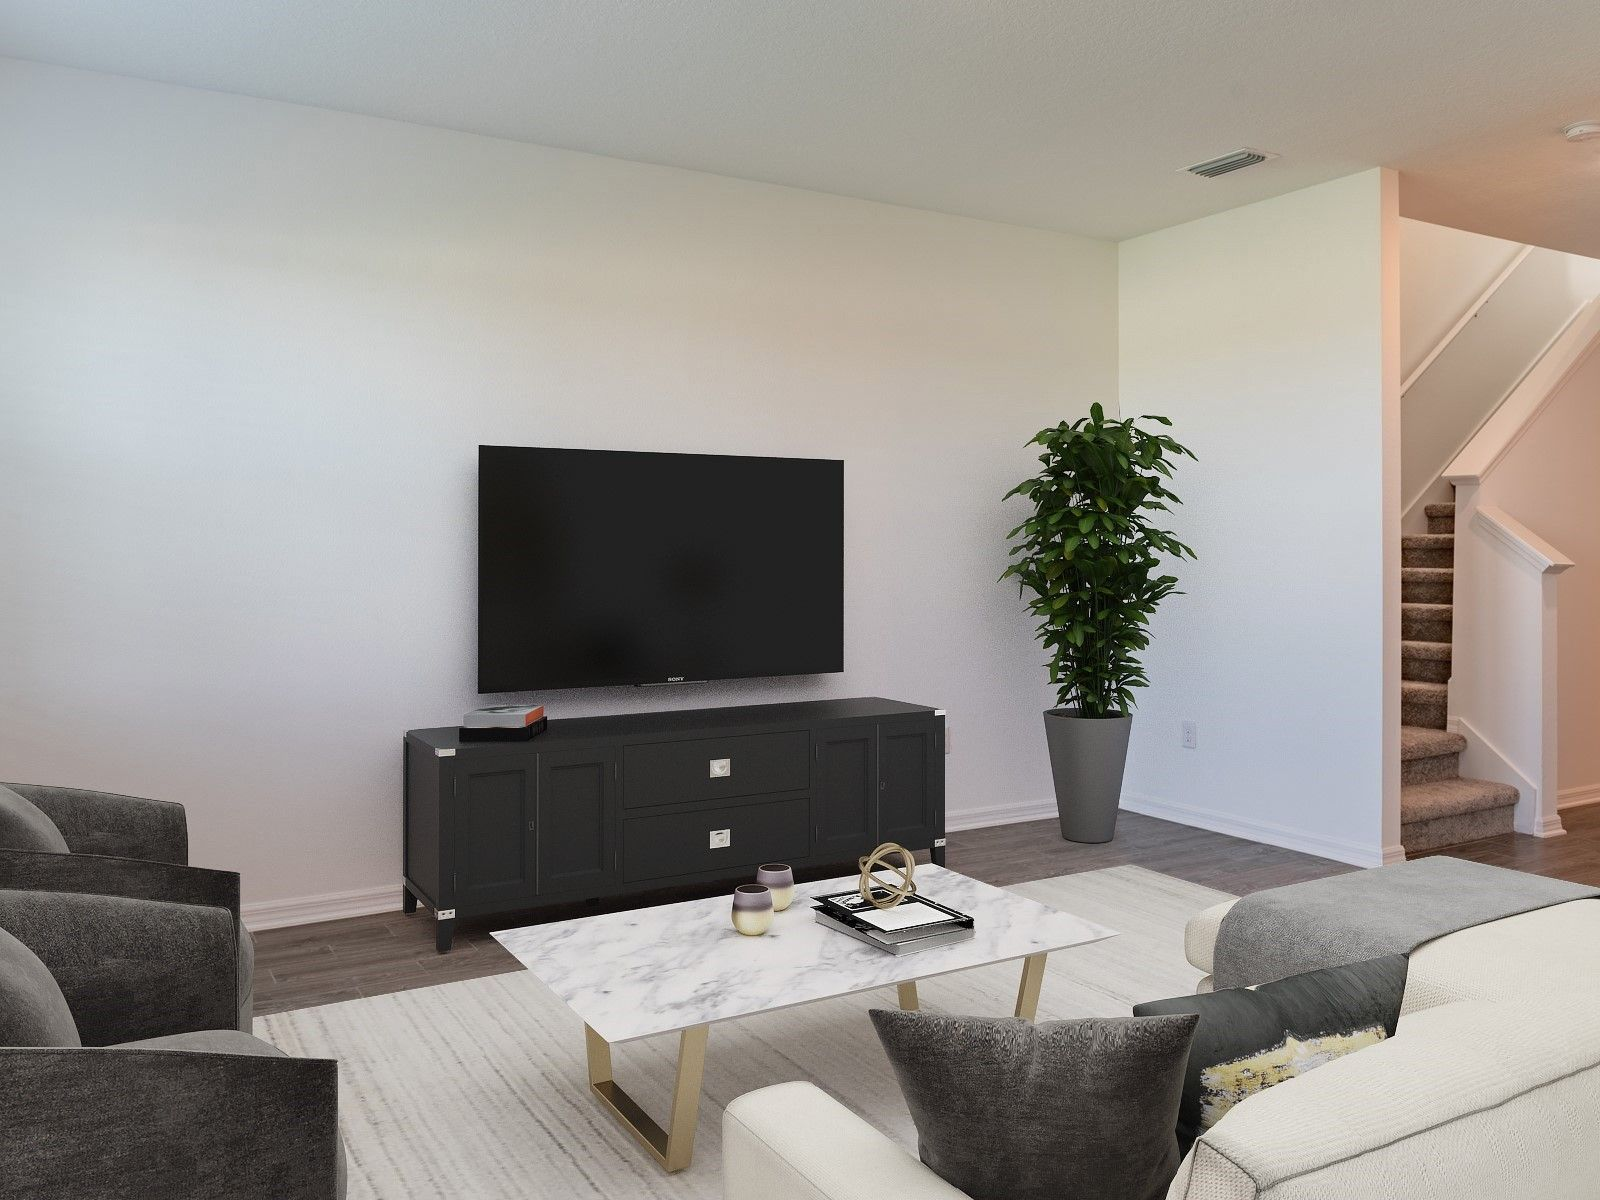 Living Area featured in the Aspen - Meritage Homes By Crown Community Development